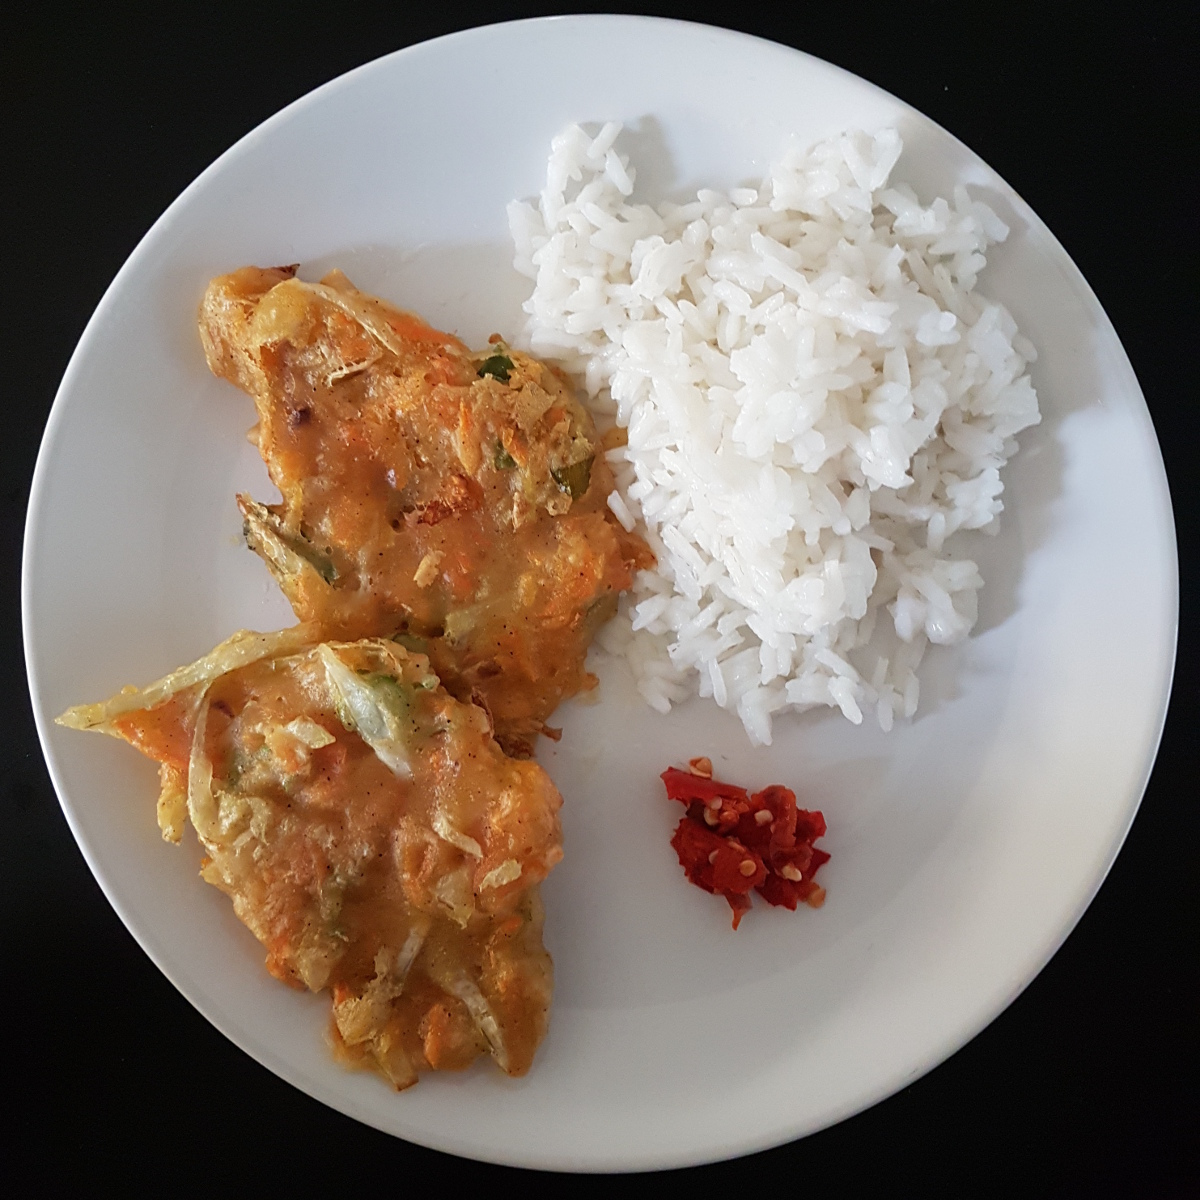 Bala bala with rice and Sambel goang